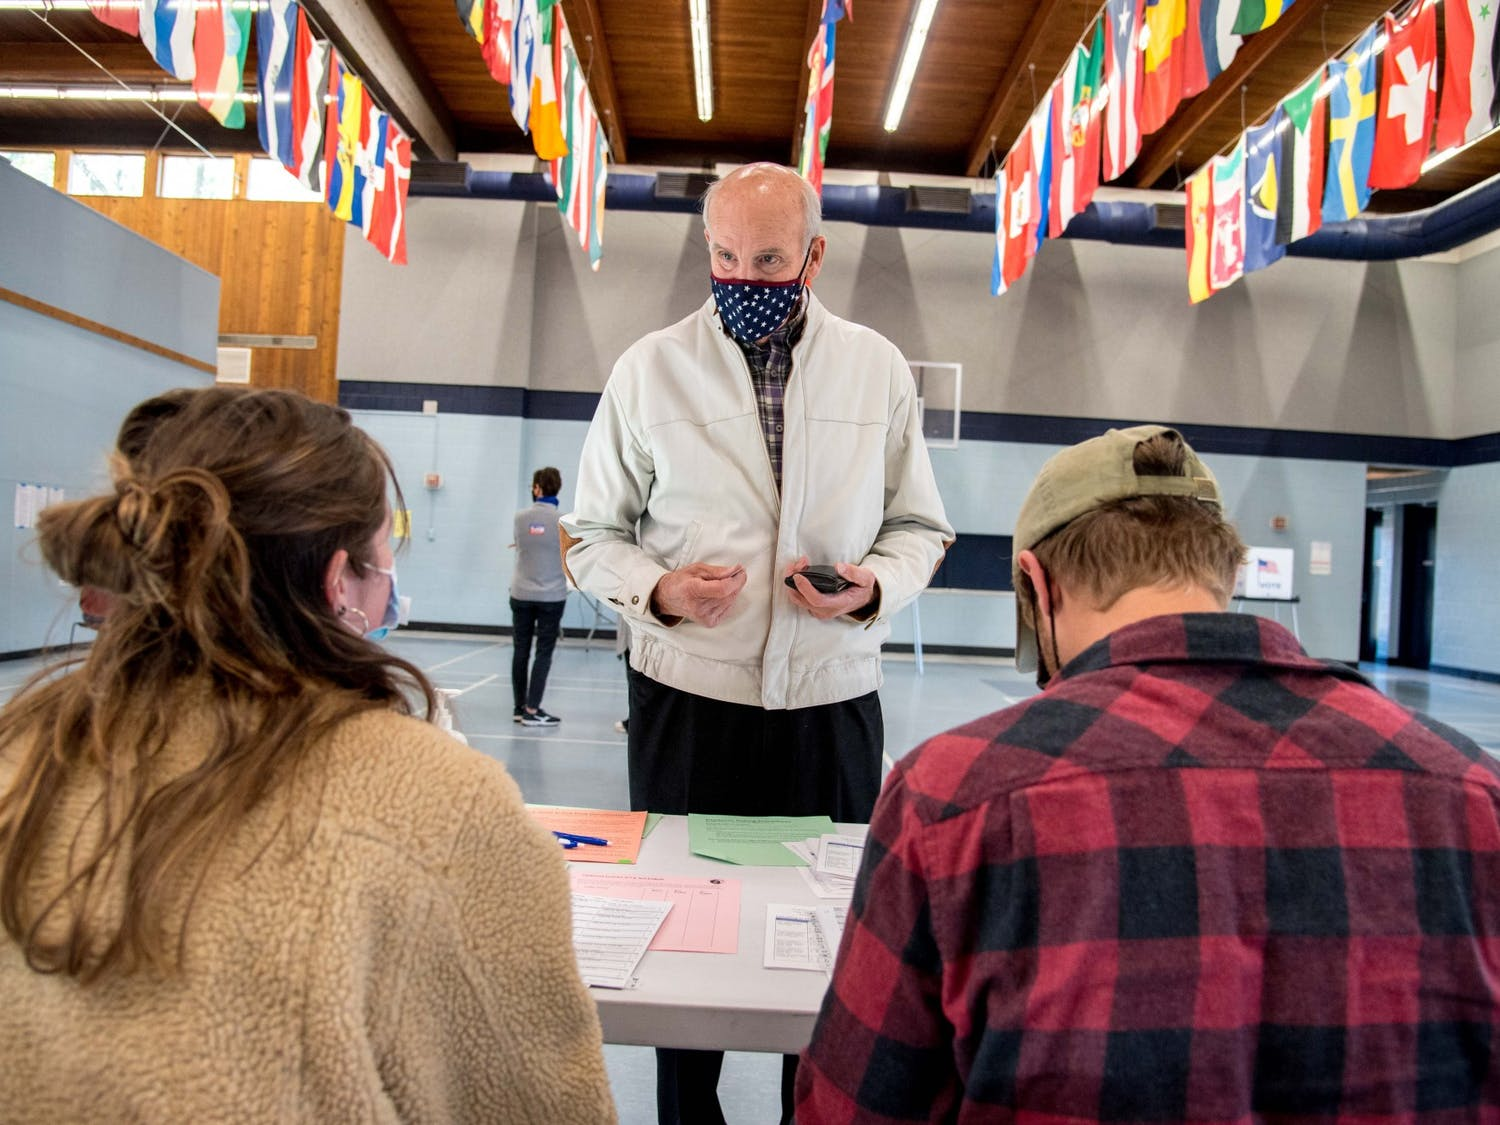 George Warren checks in to his polling place at the Eagle Heights Community Center in Madison, Wis., on the day of the November 3, 2020 election.